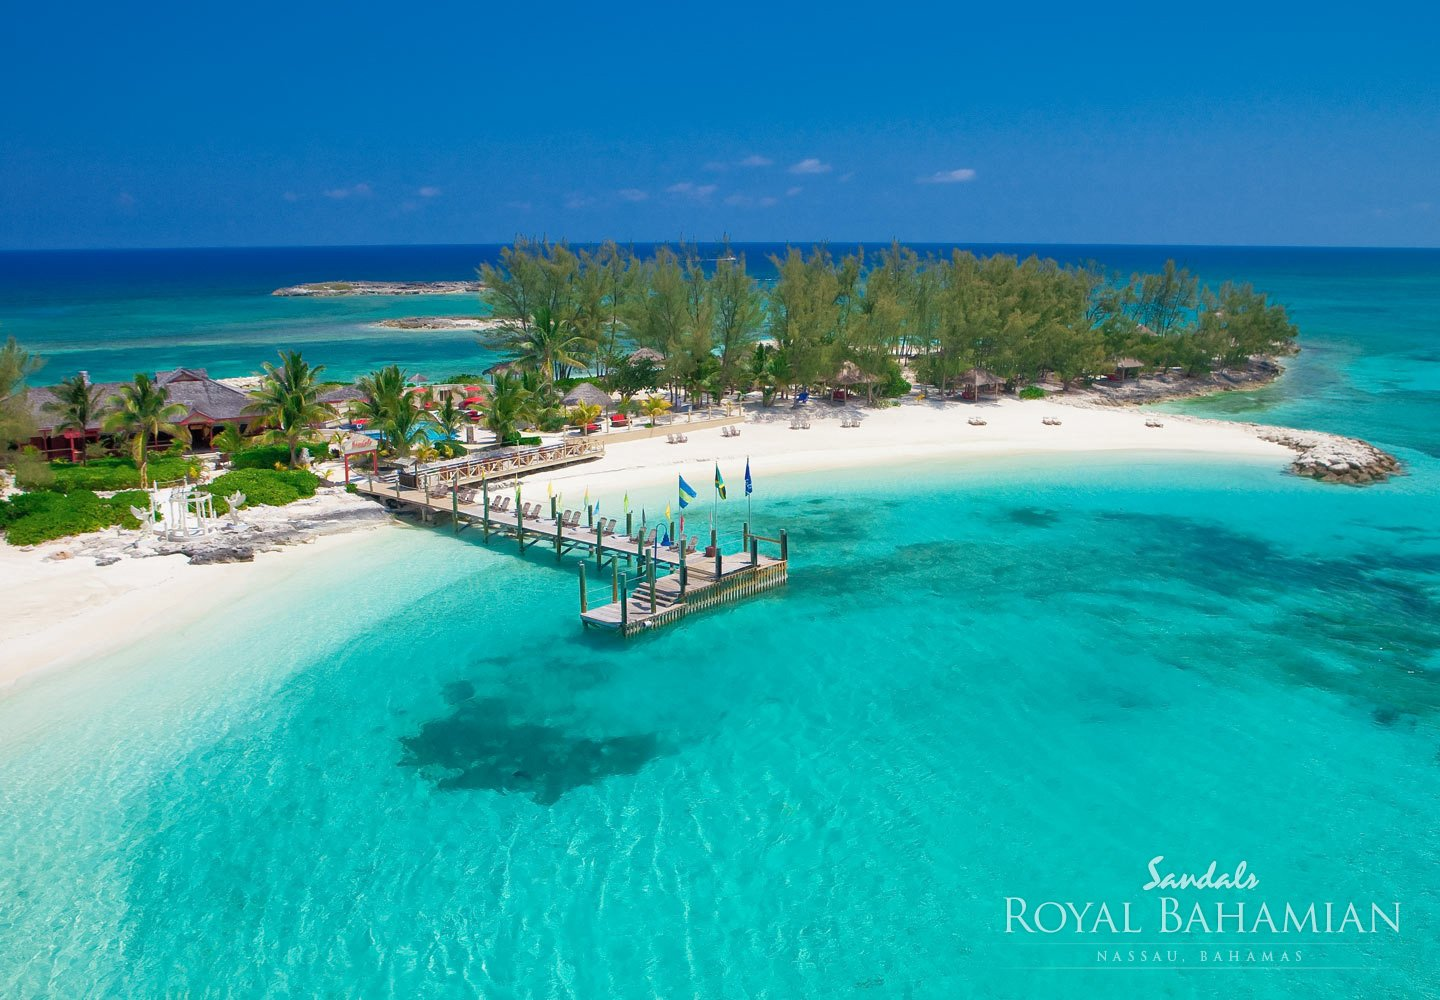 Sandals Royal Bahamian  elegant allinclusive resort in